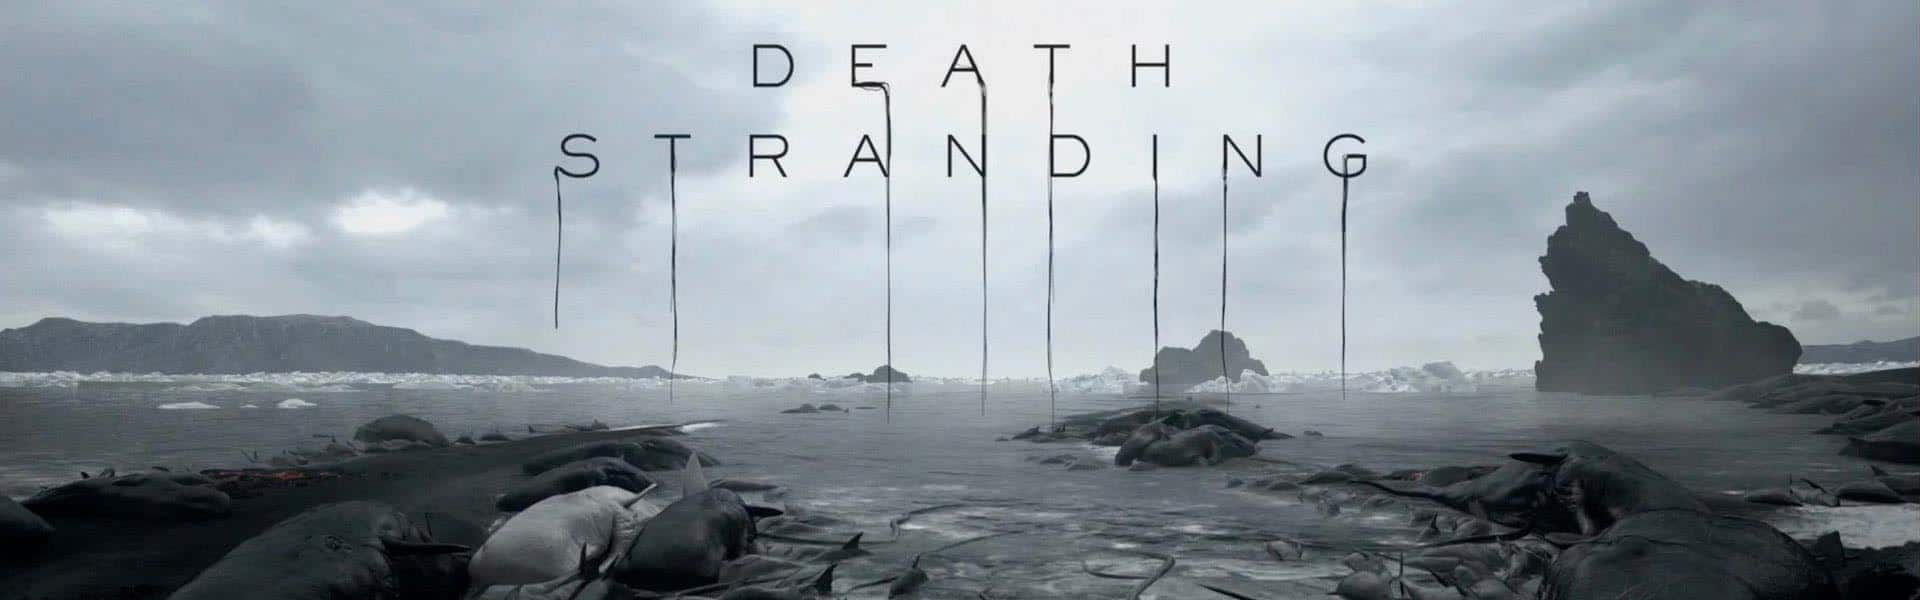 Death Stranding Release Date, Trailer, News and Rumors